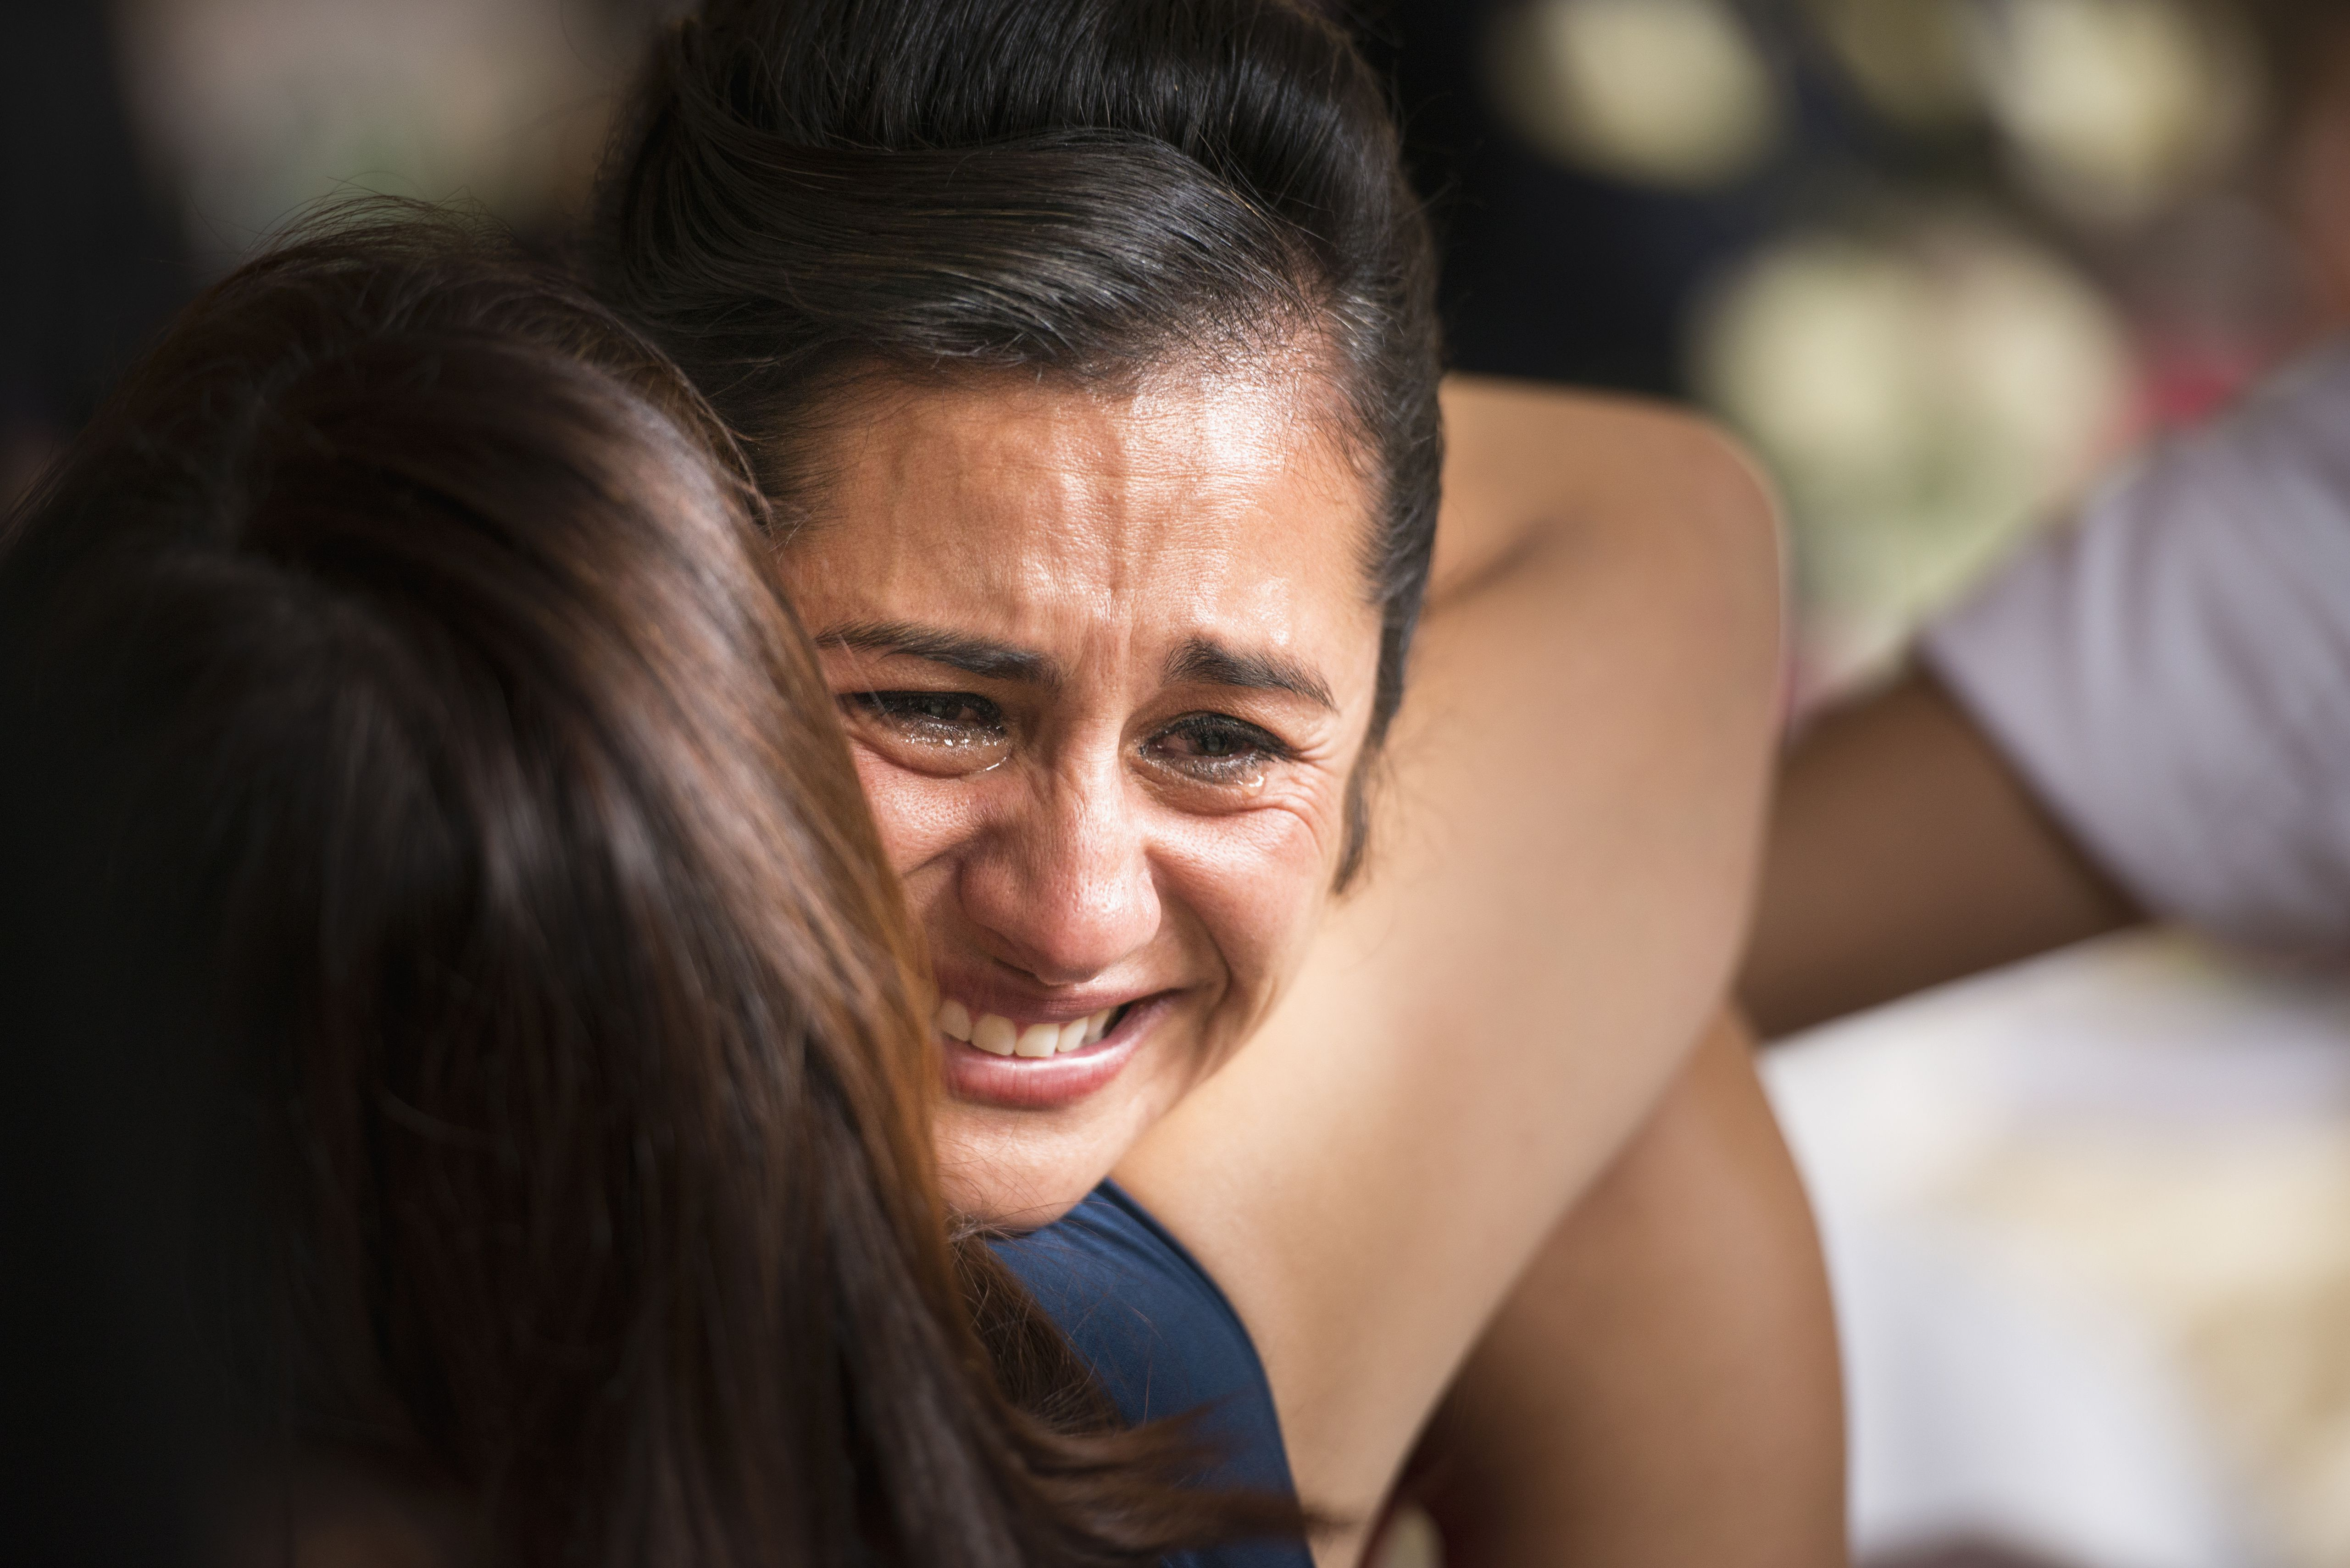 Hispanic woman crying being hugged by another woman